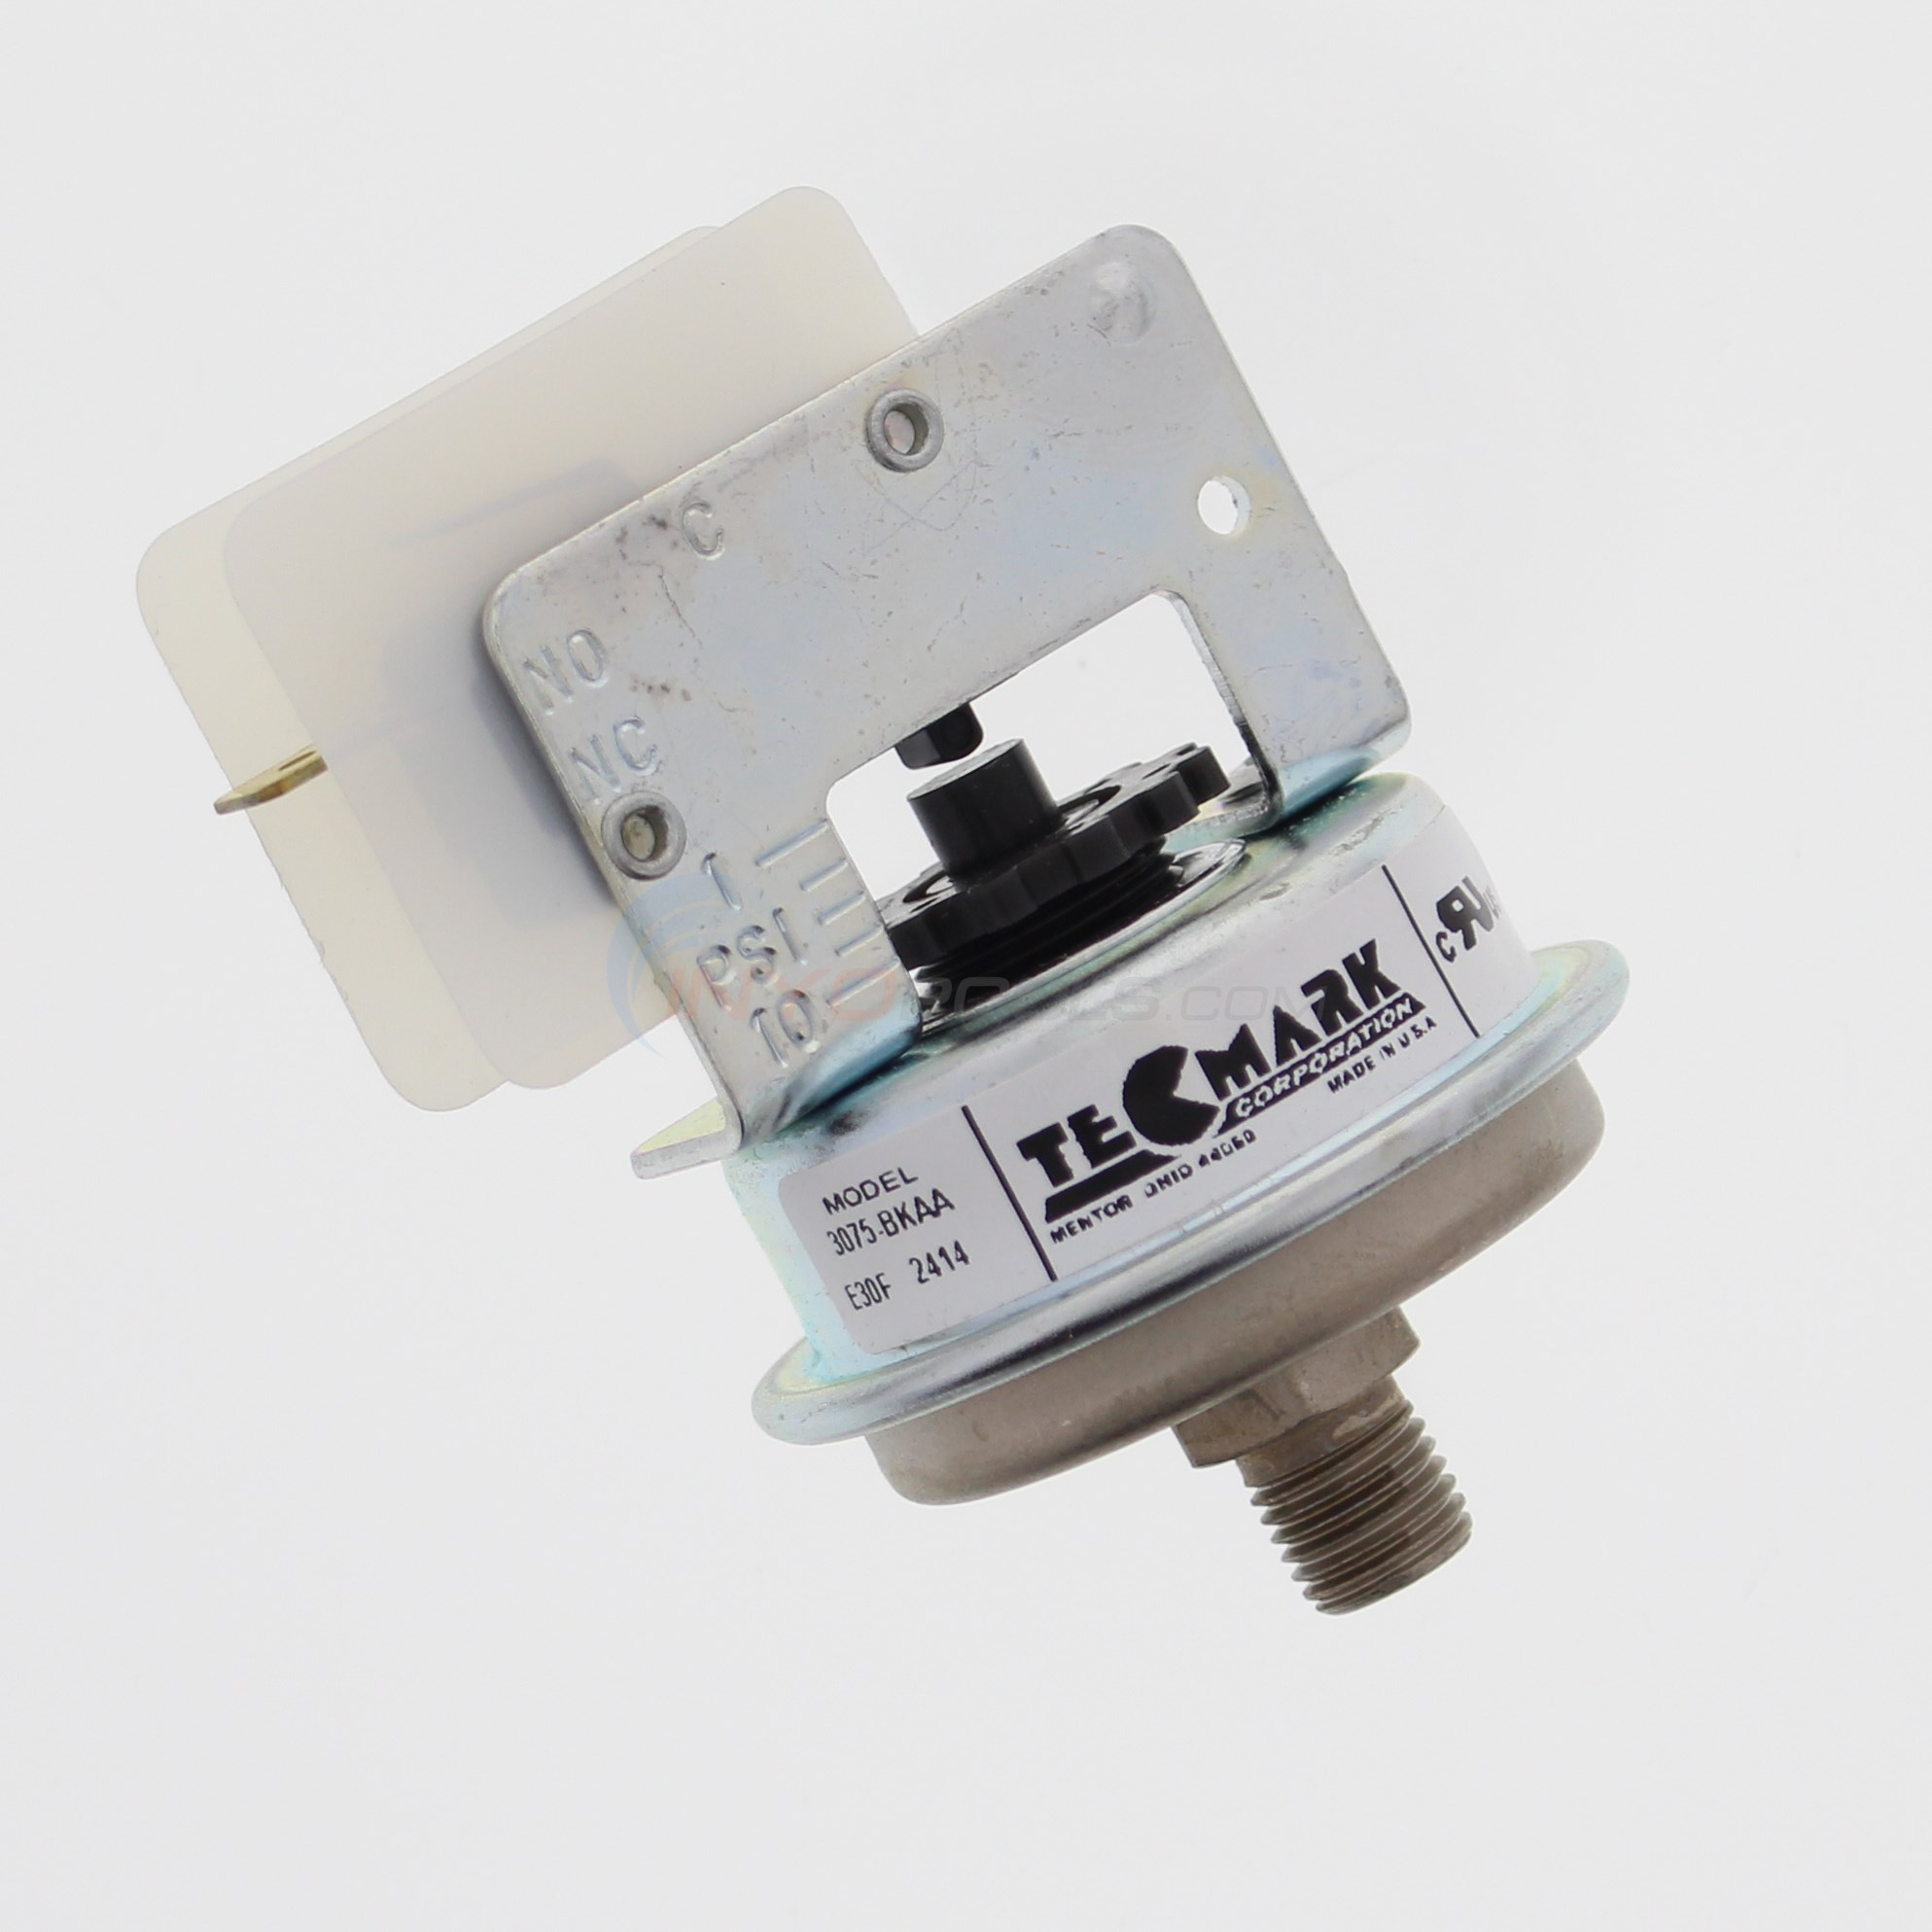 PRESSURE SWITCH, SPECIAL(1-10 PSI)